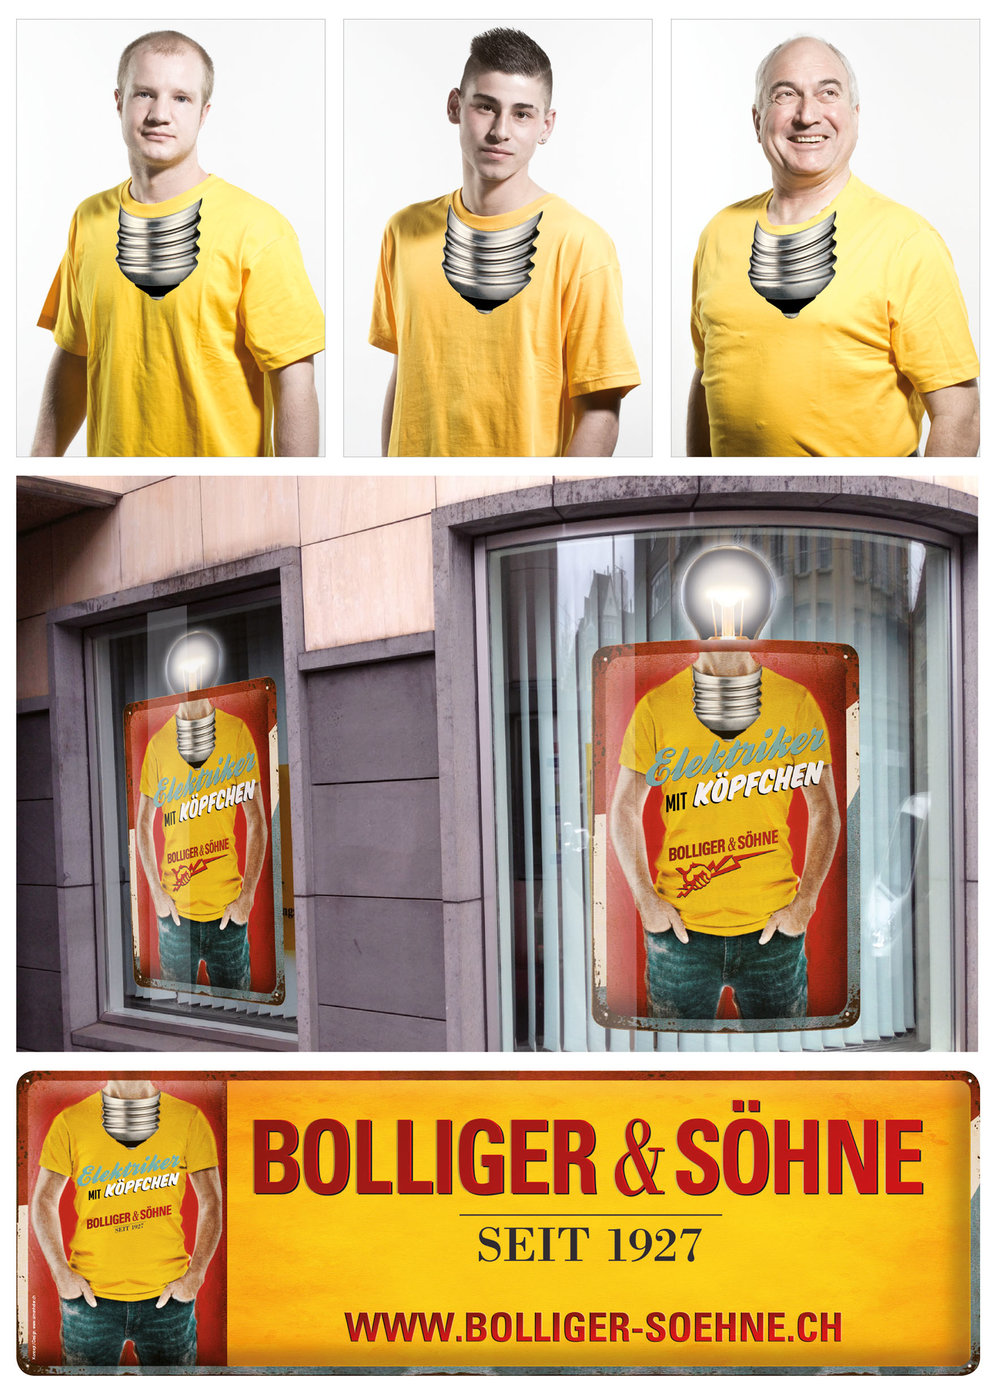 Bolliger & Söhne, Corporate und Kommunikation